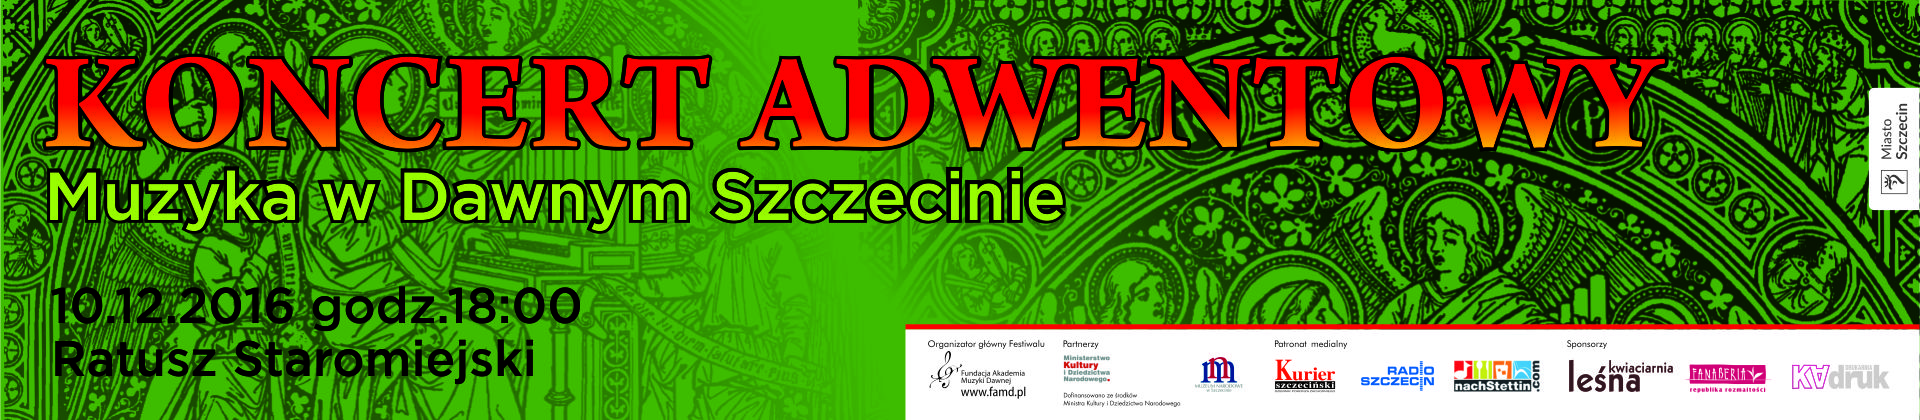 Banner koncertowy